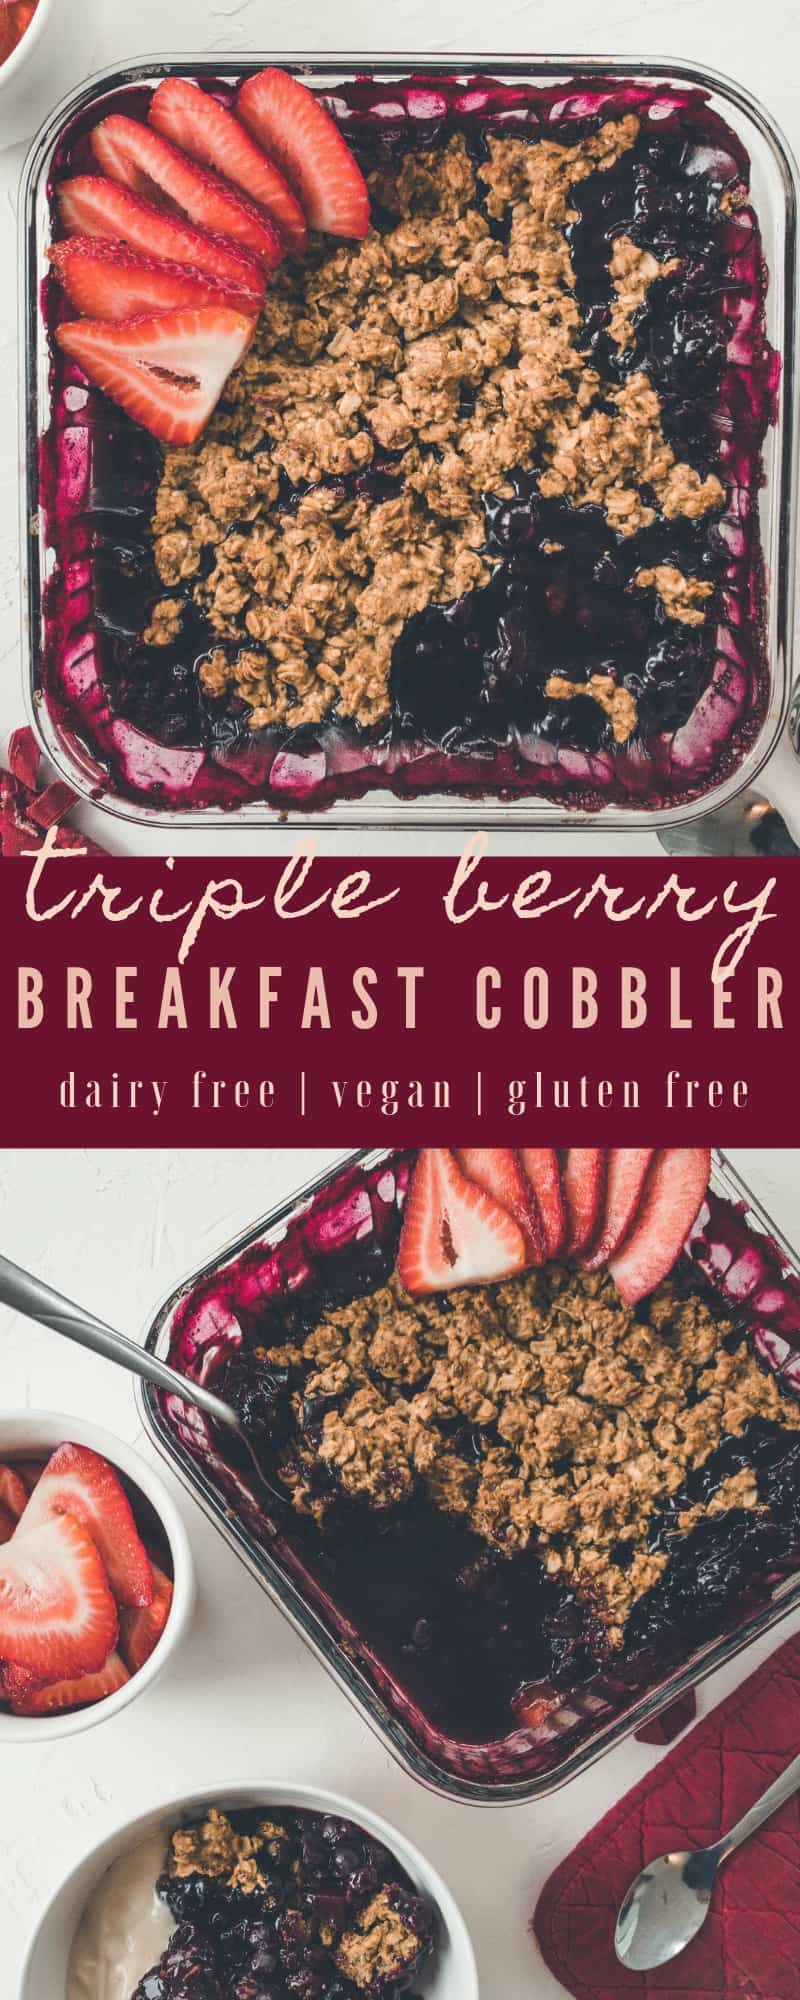 This triple berry cobbler is the perfect option for a sweet breakfast that the entire family will love! Naturally gluten free, dairy free, & vegan!